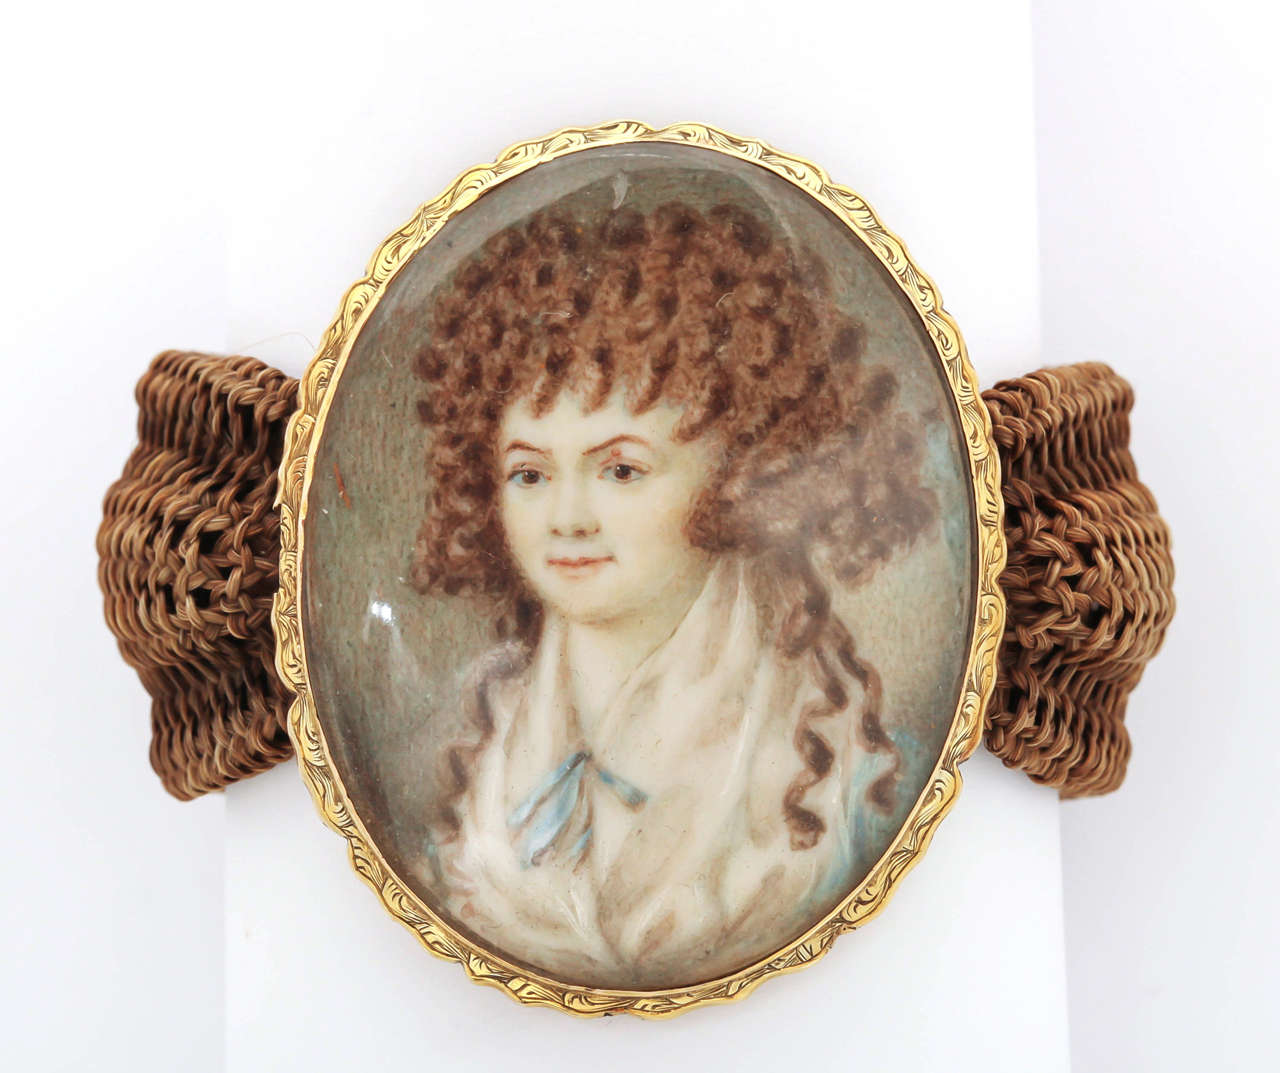 Miniature Portrait Yellow Gold Woven Band Bracelet 2